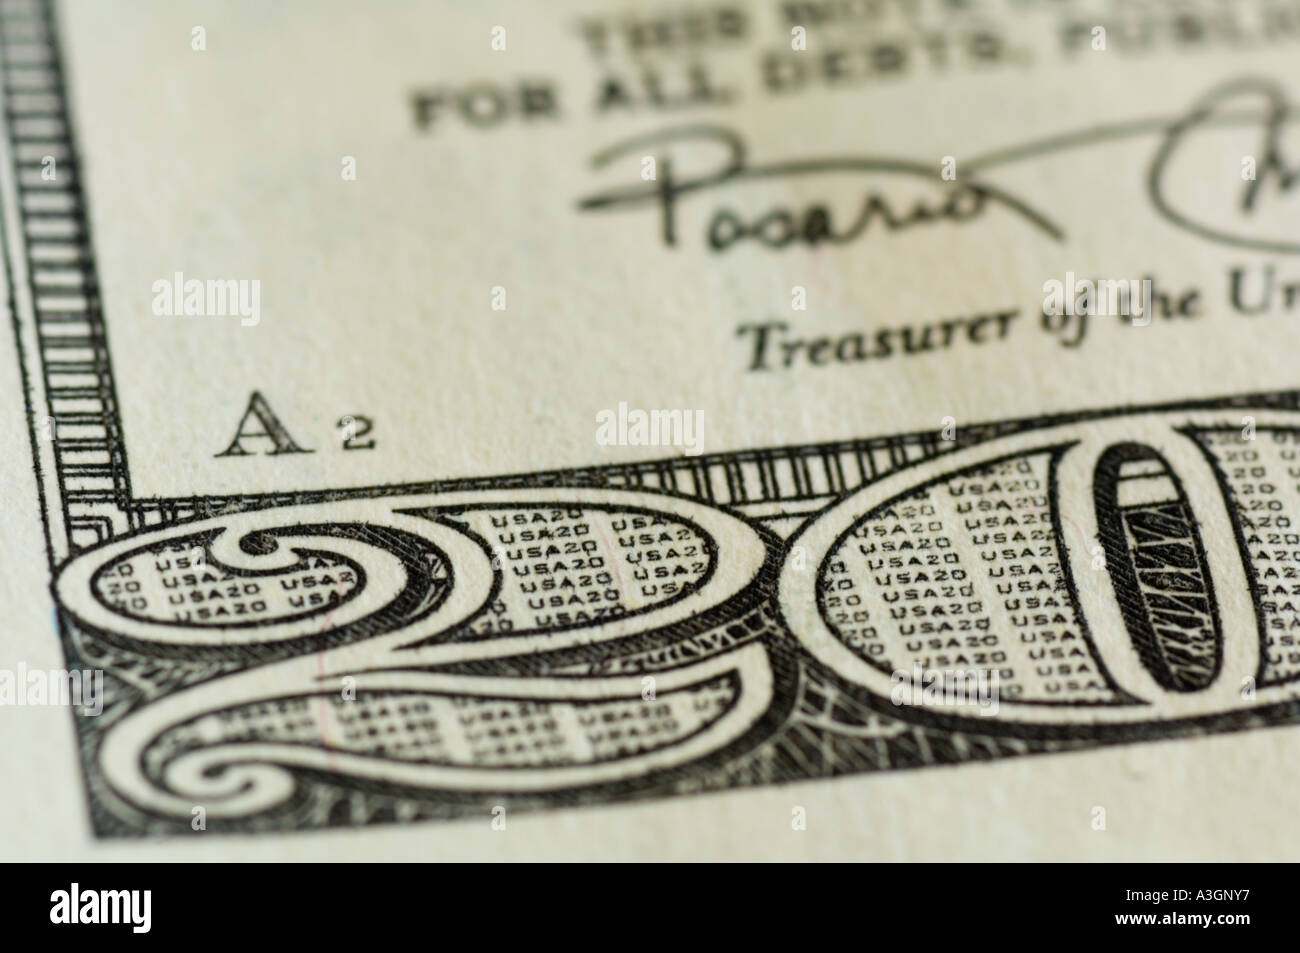 extreme closeup view of portion of a 20 dollar bill US - Stock Image